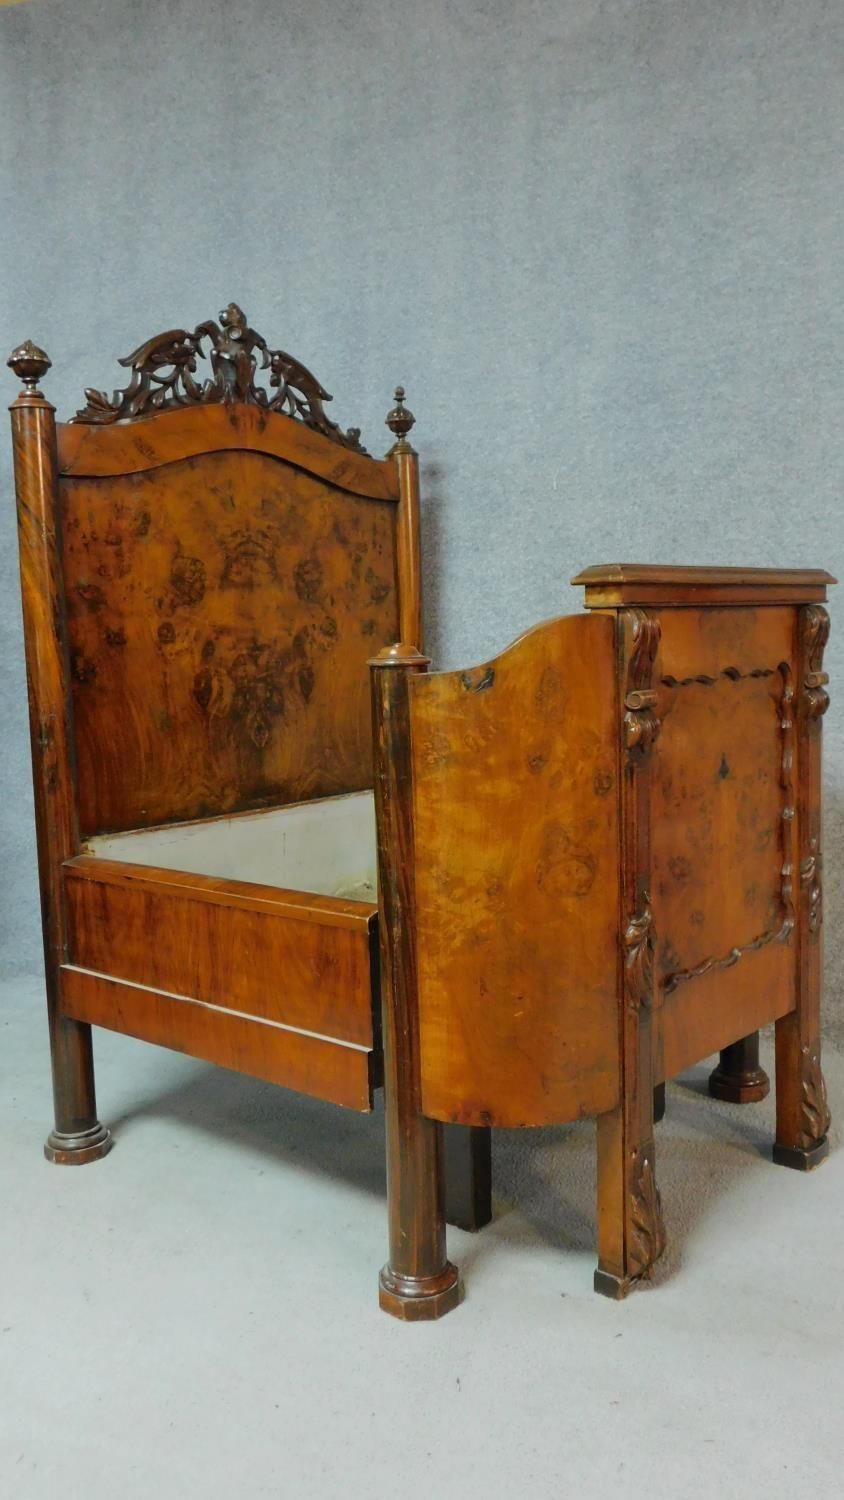 Lot 3 - A 19th century French burr walnut nursing bed with floral carvings to the top and to the legs,